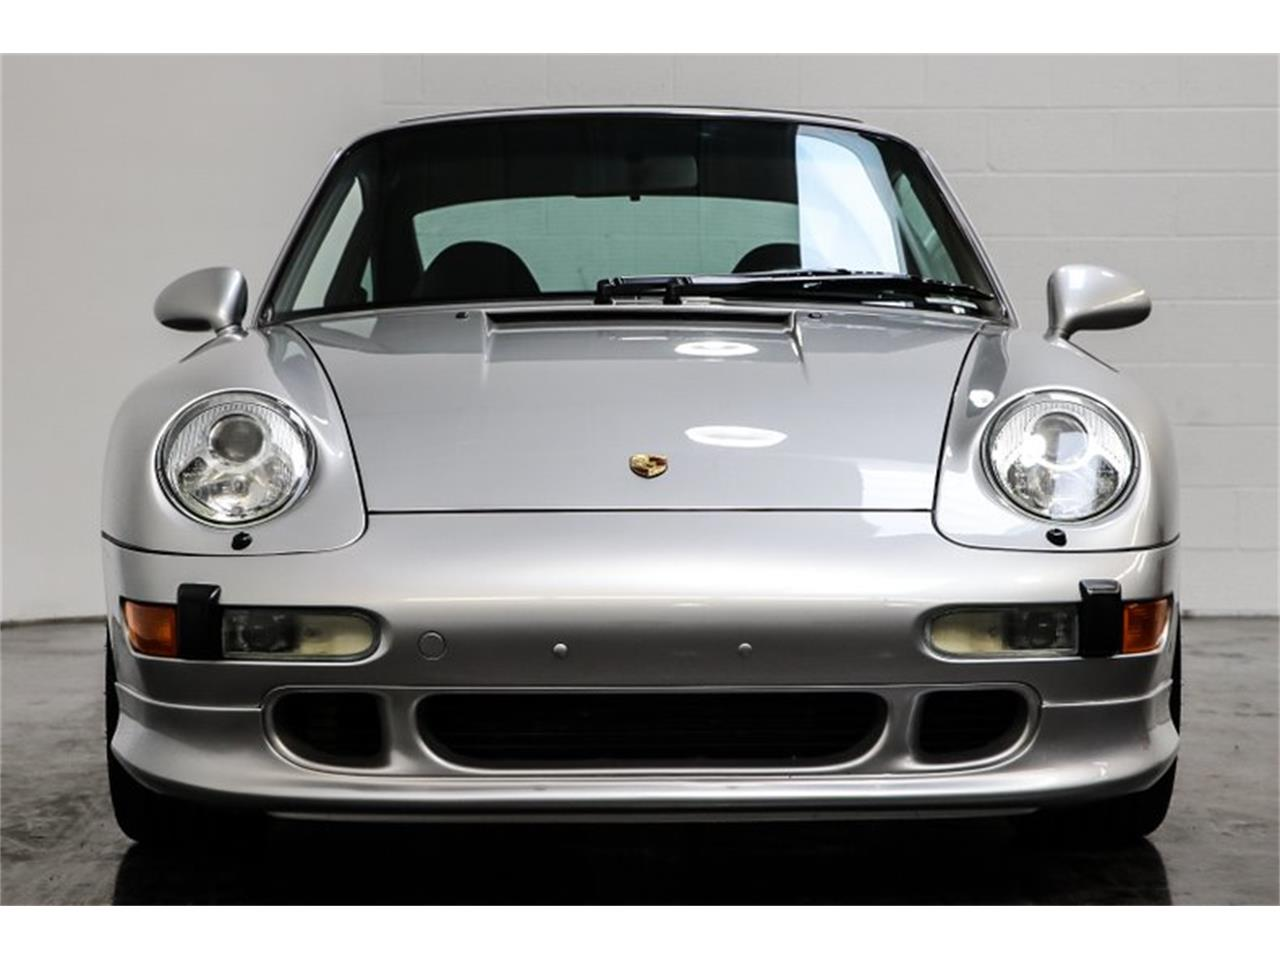 1998 Porsche 911 for sale in Costa Mesa, CA – photo 7